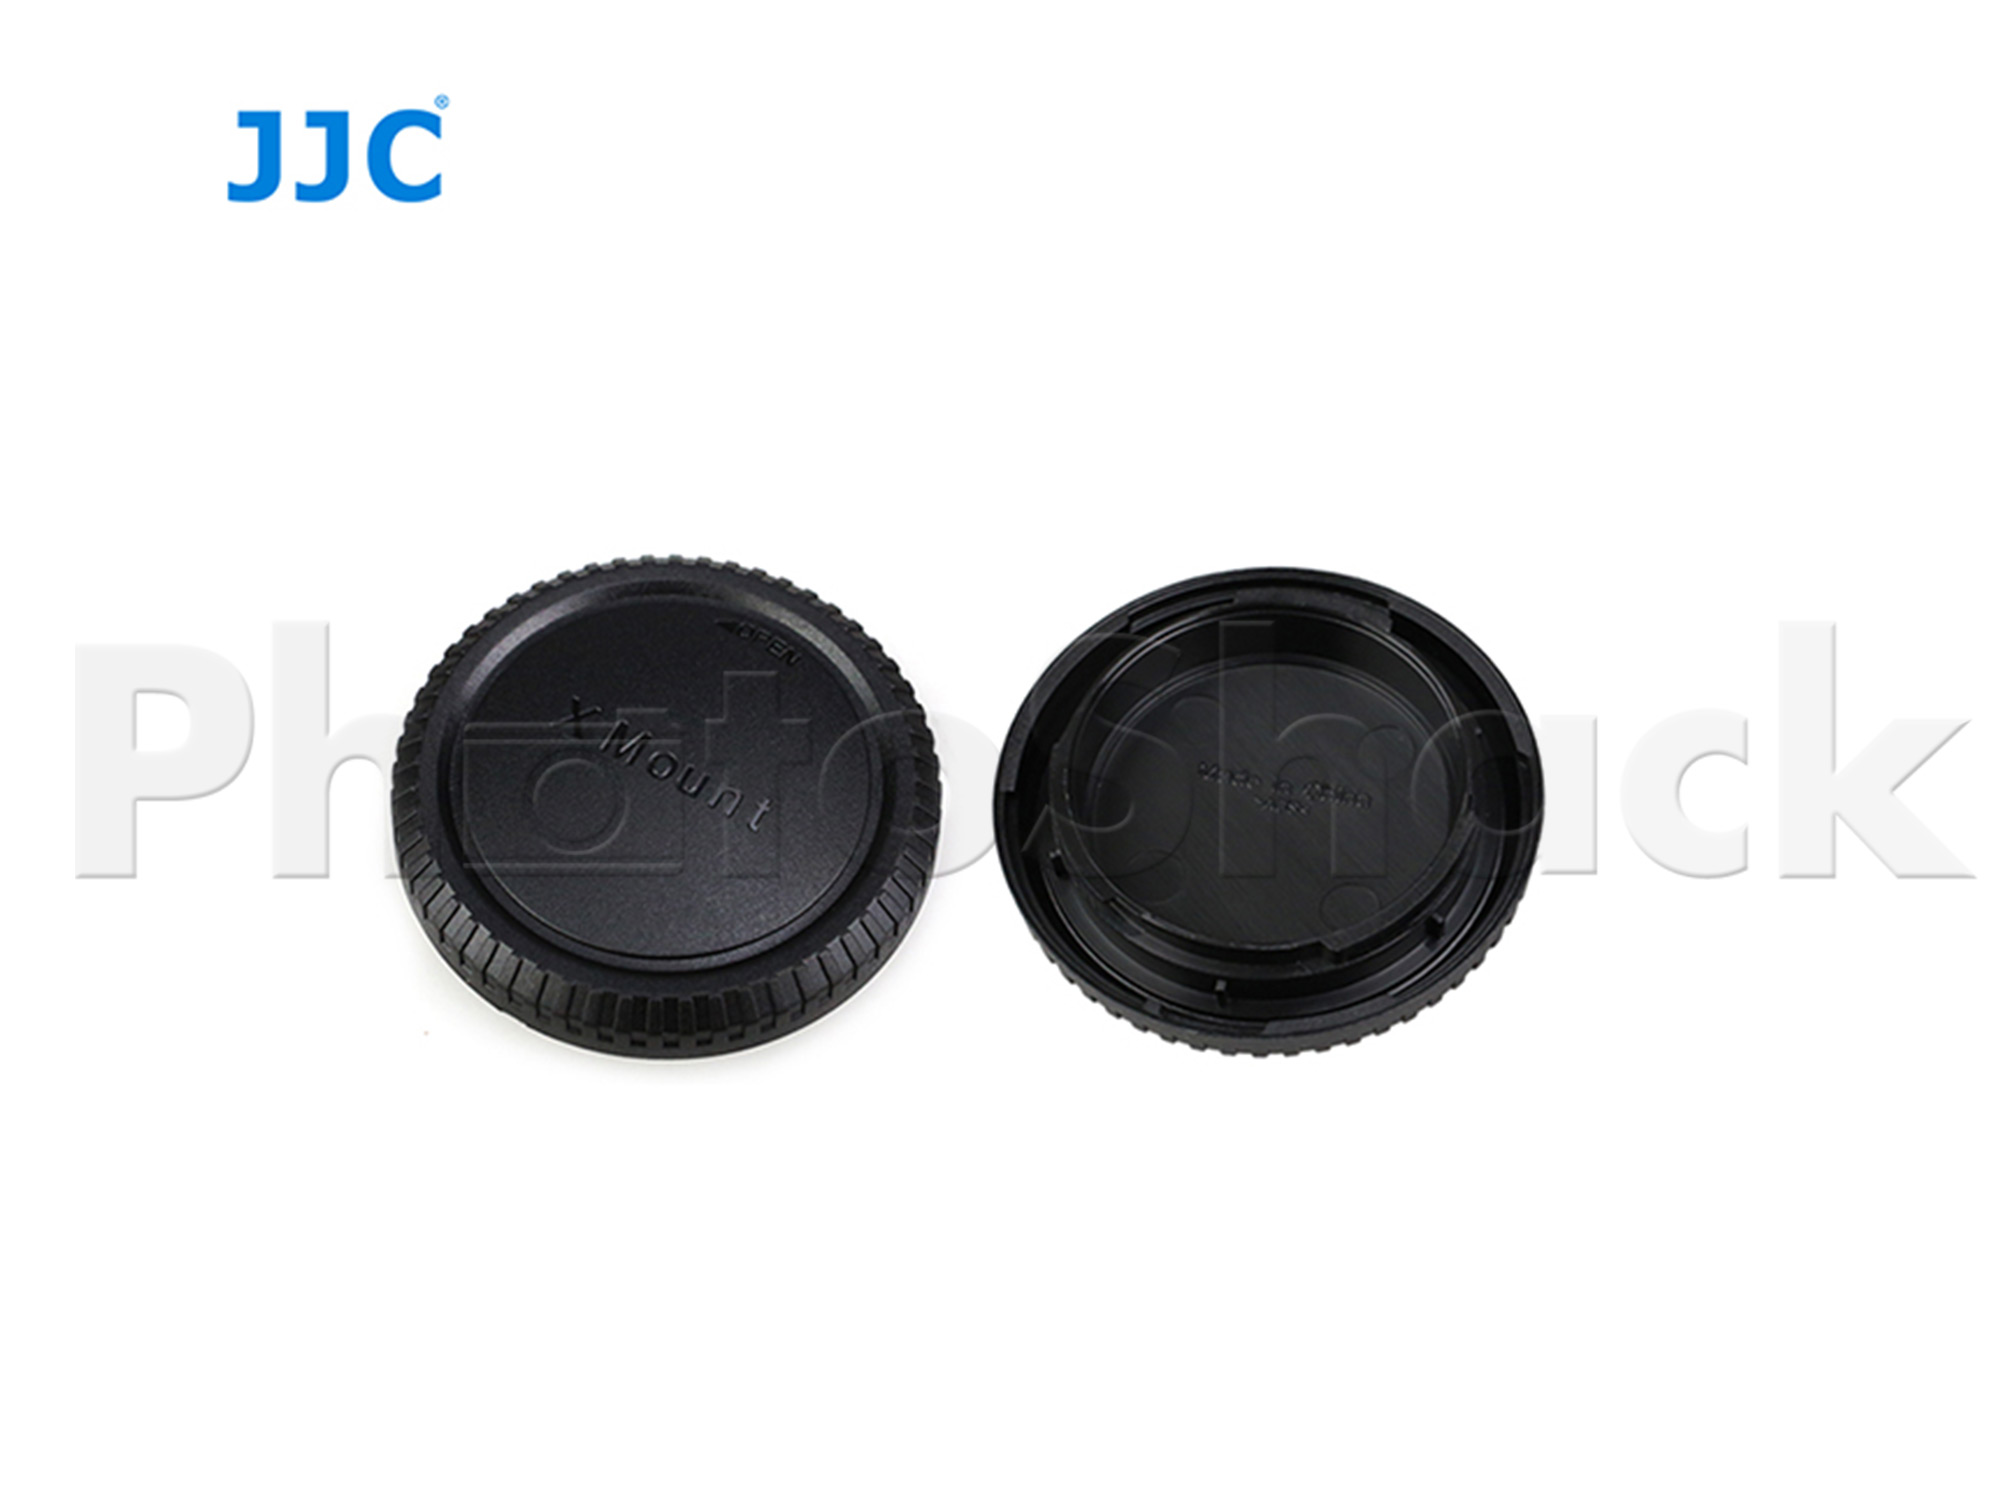 Body & Rear Lens Cap for Fuji X Mount